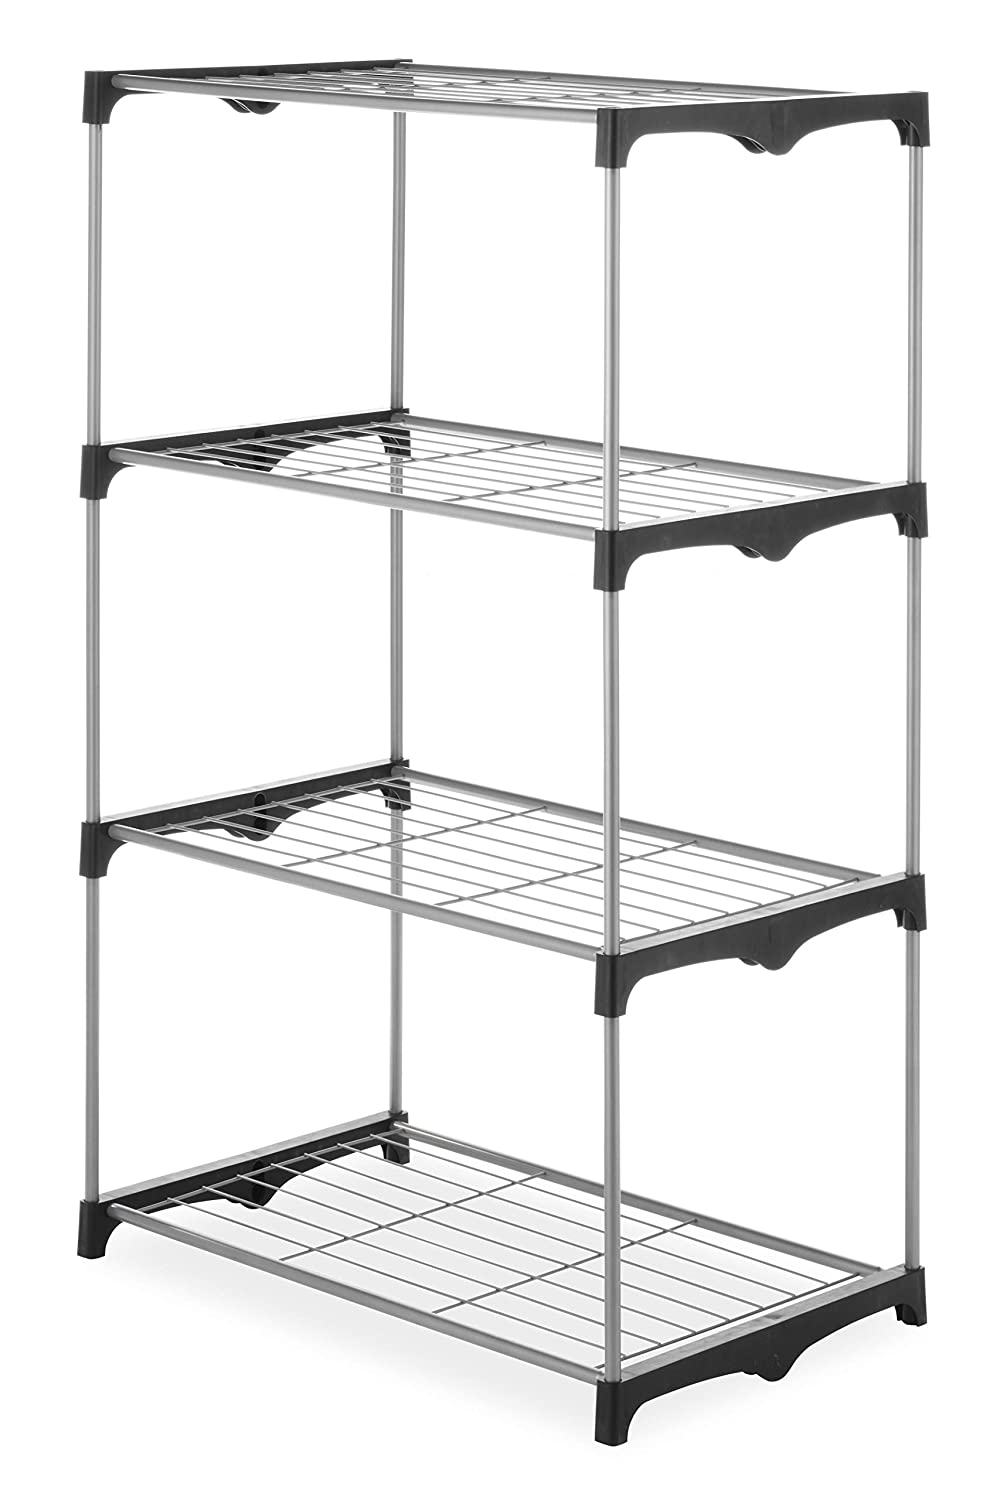 Whitmor 4 Tier Shelf Tower - Closet Storage Organizer